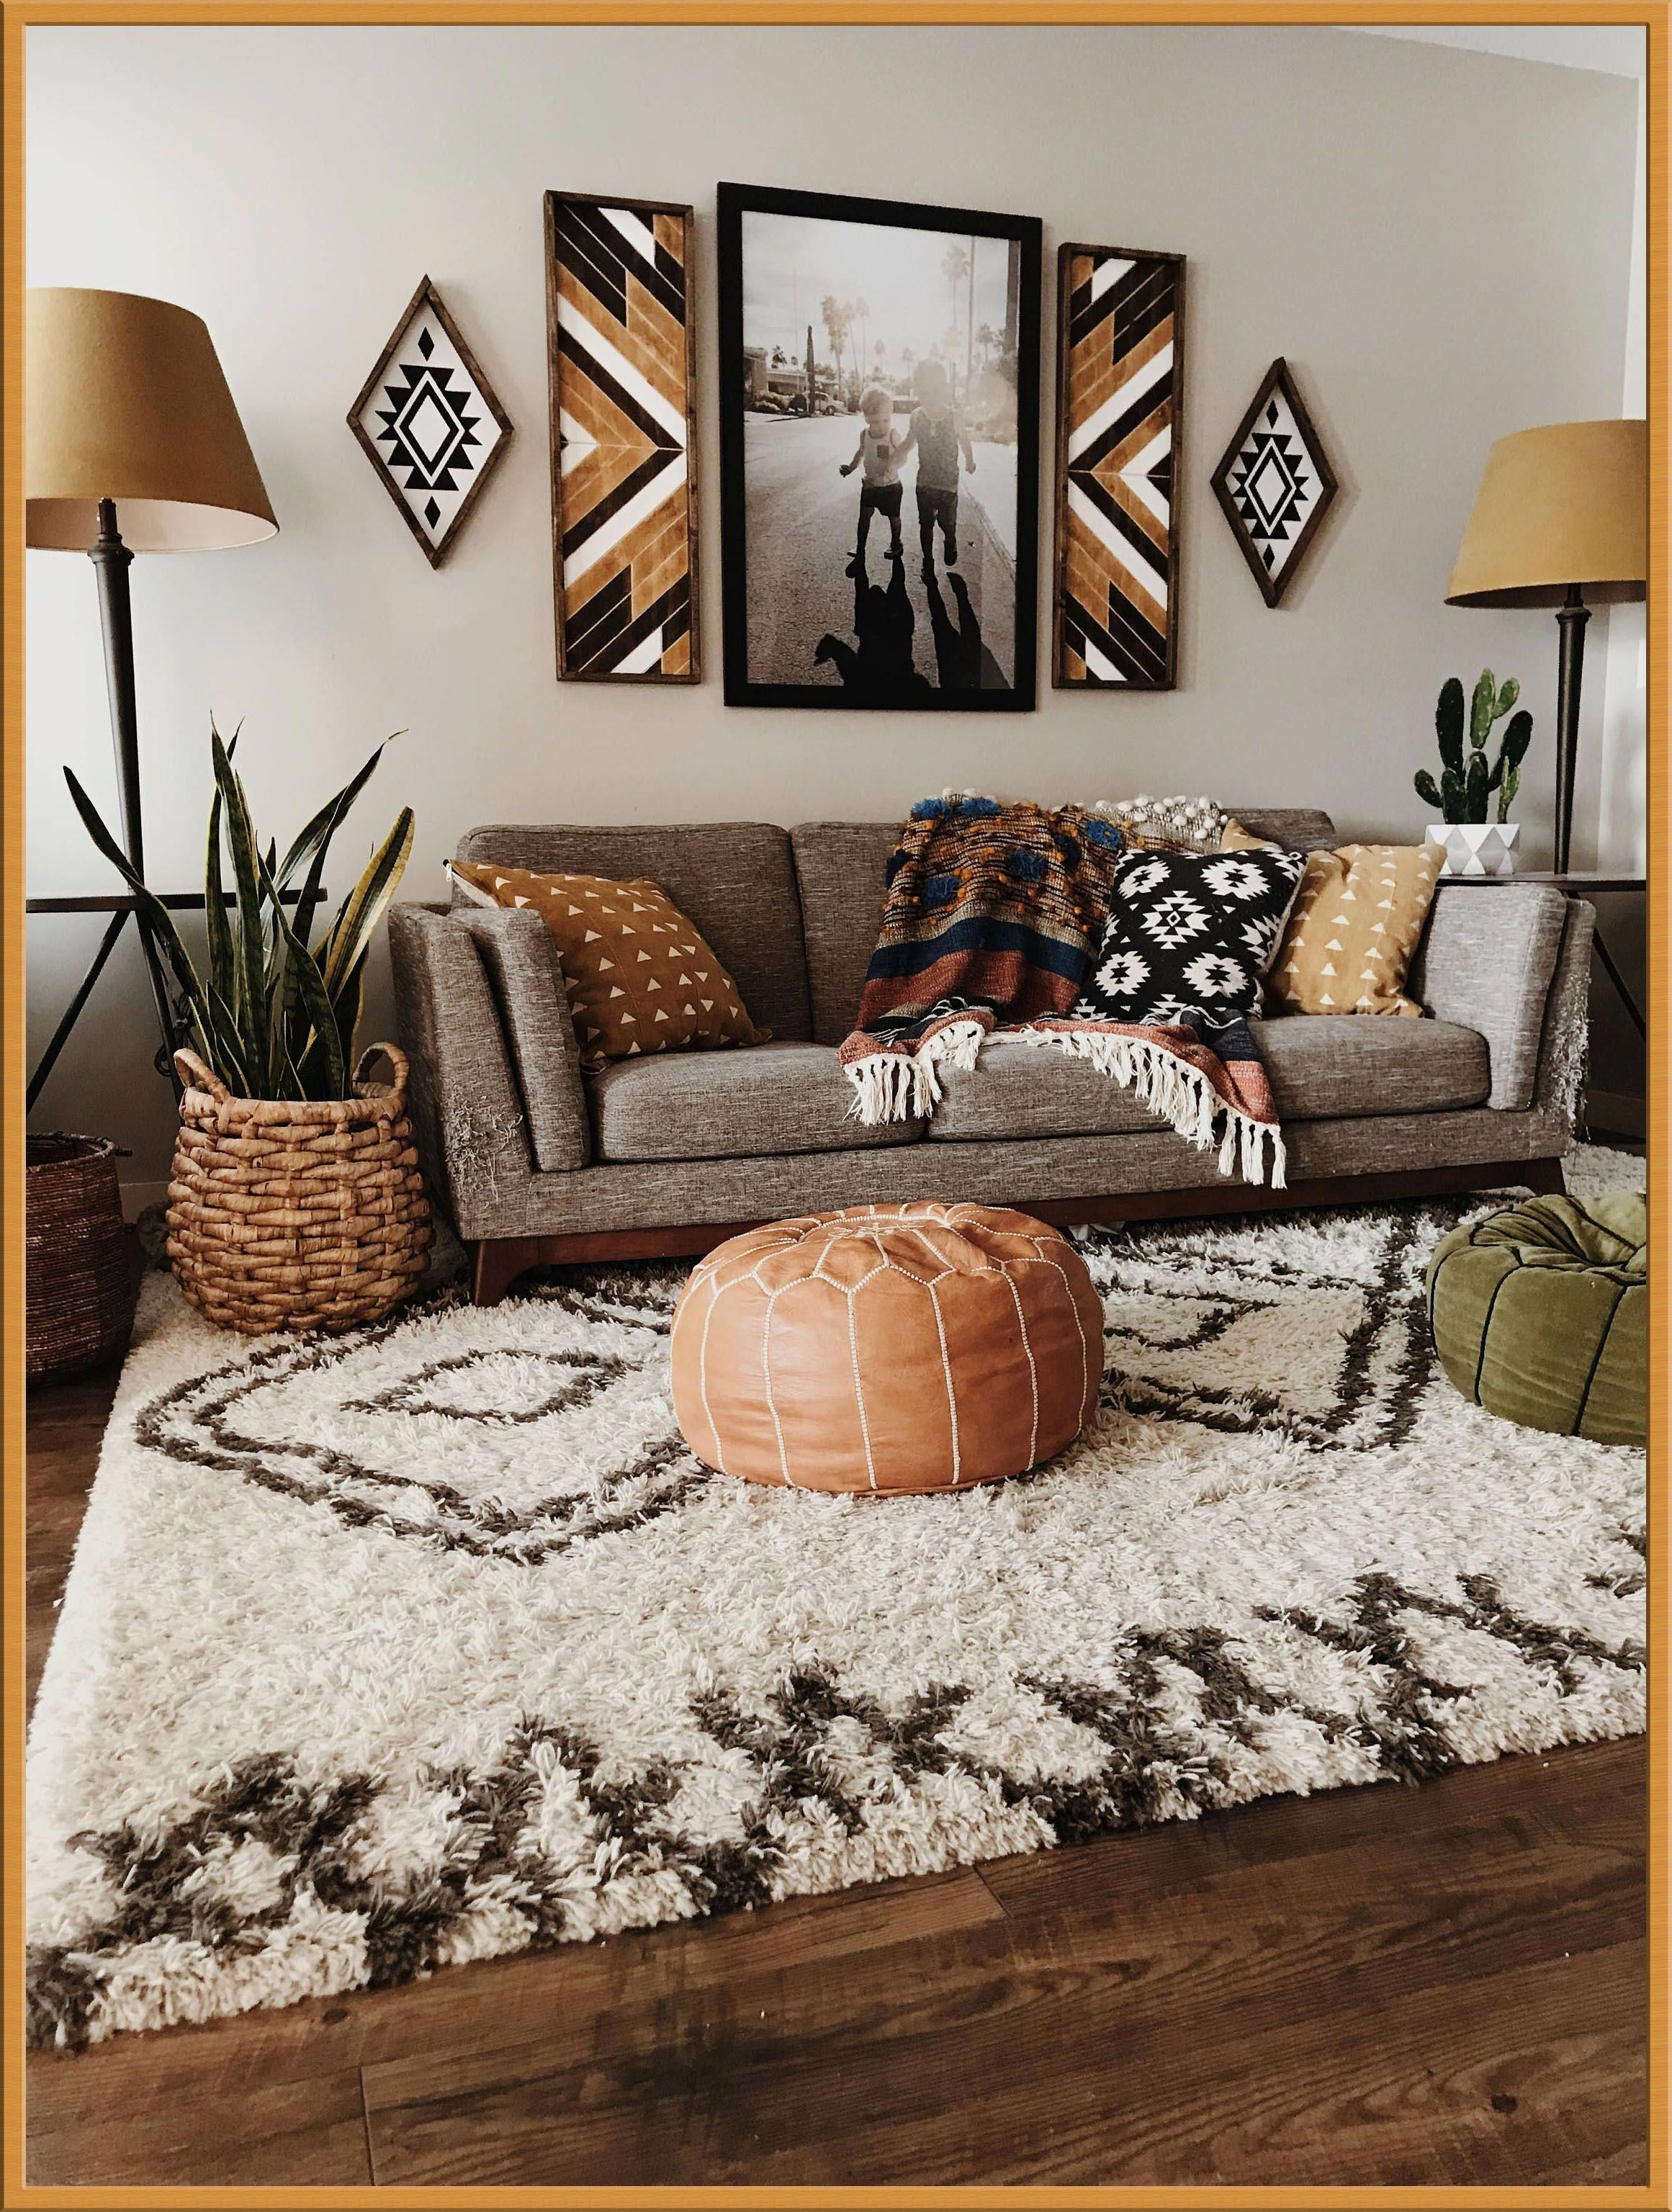 Have You Heard? Bohemian Homedecor Is Your Best Bet To Grow